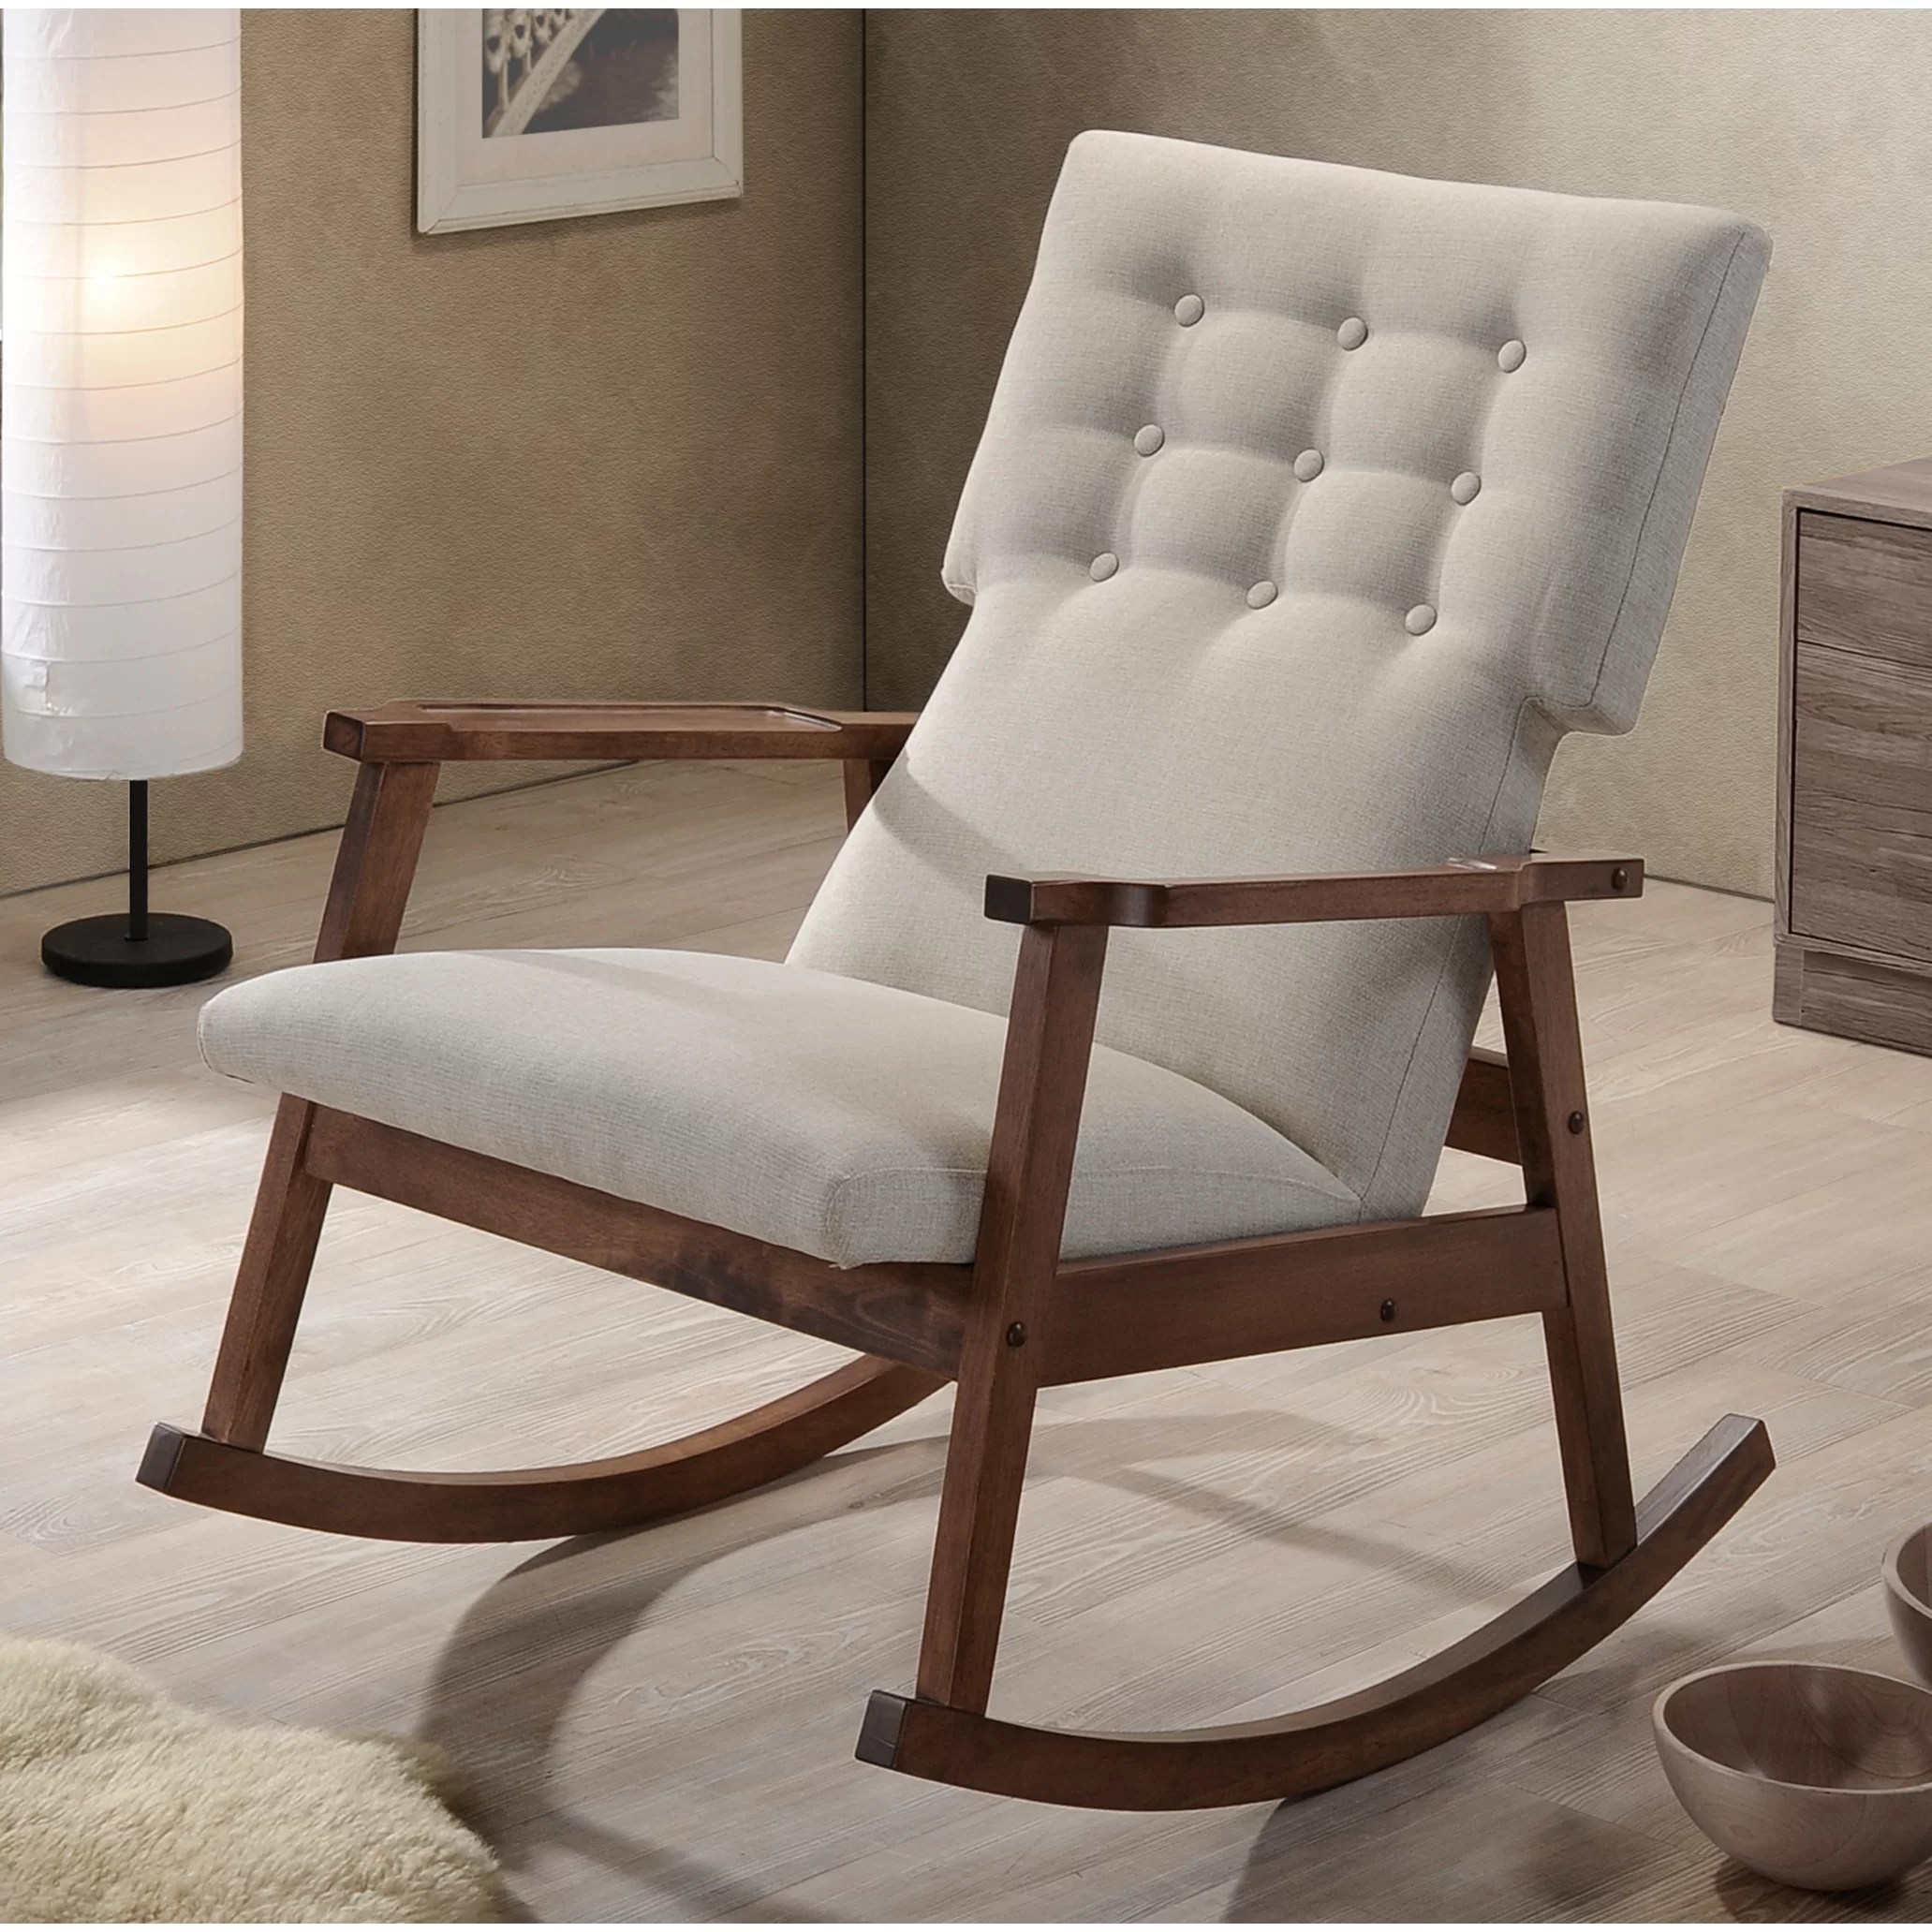 Baxton Chair Wholesale Interiors Baxton Studio Rocking Chair And Reviews